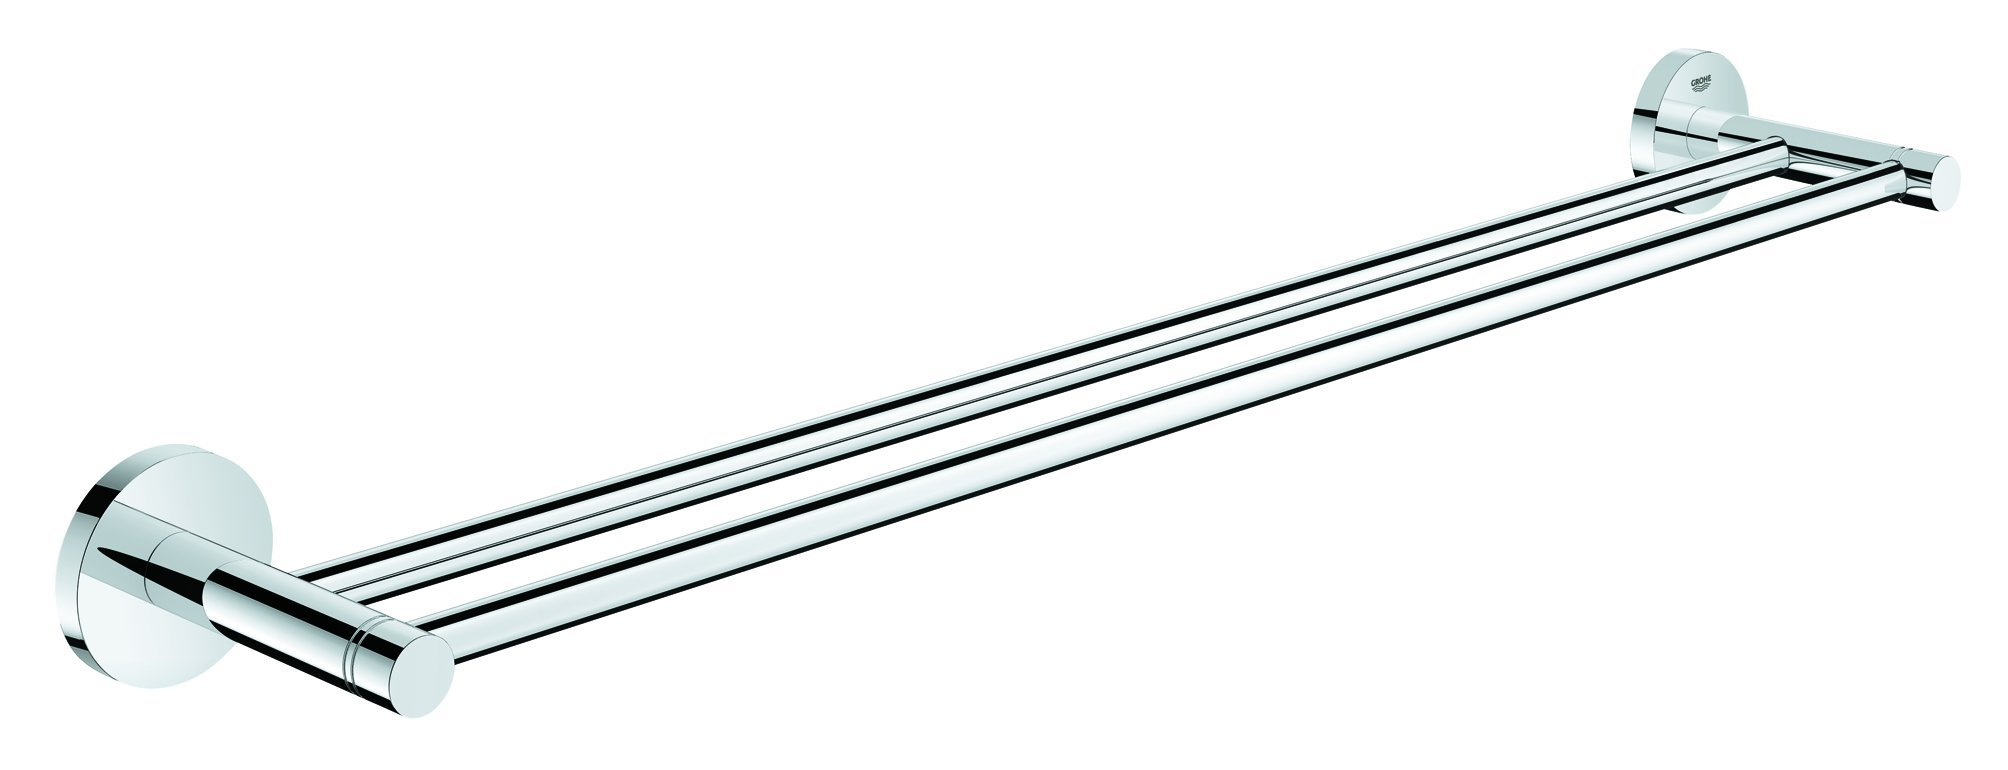 Grohe 40802001 Essentials Double Towel Bar 26.182 x 4.725 x 2.363 Chrome by GROHE (Image #2)